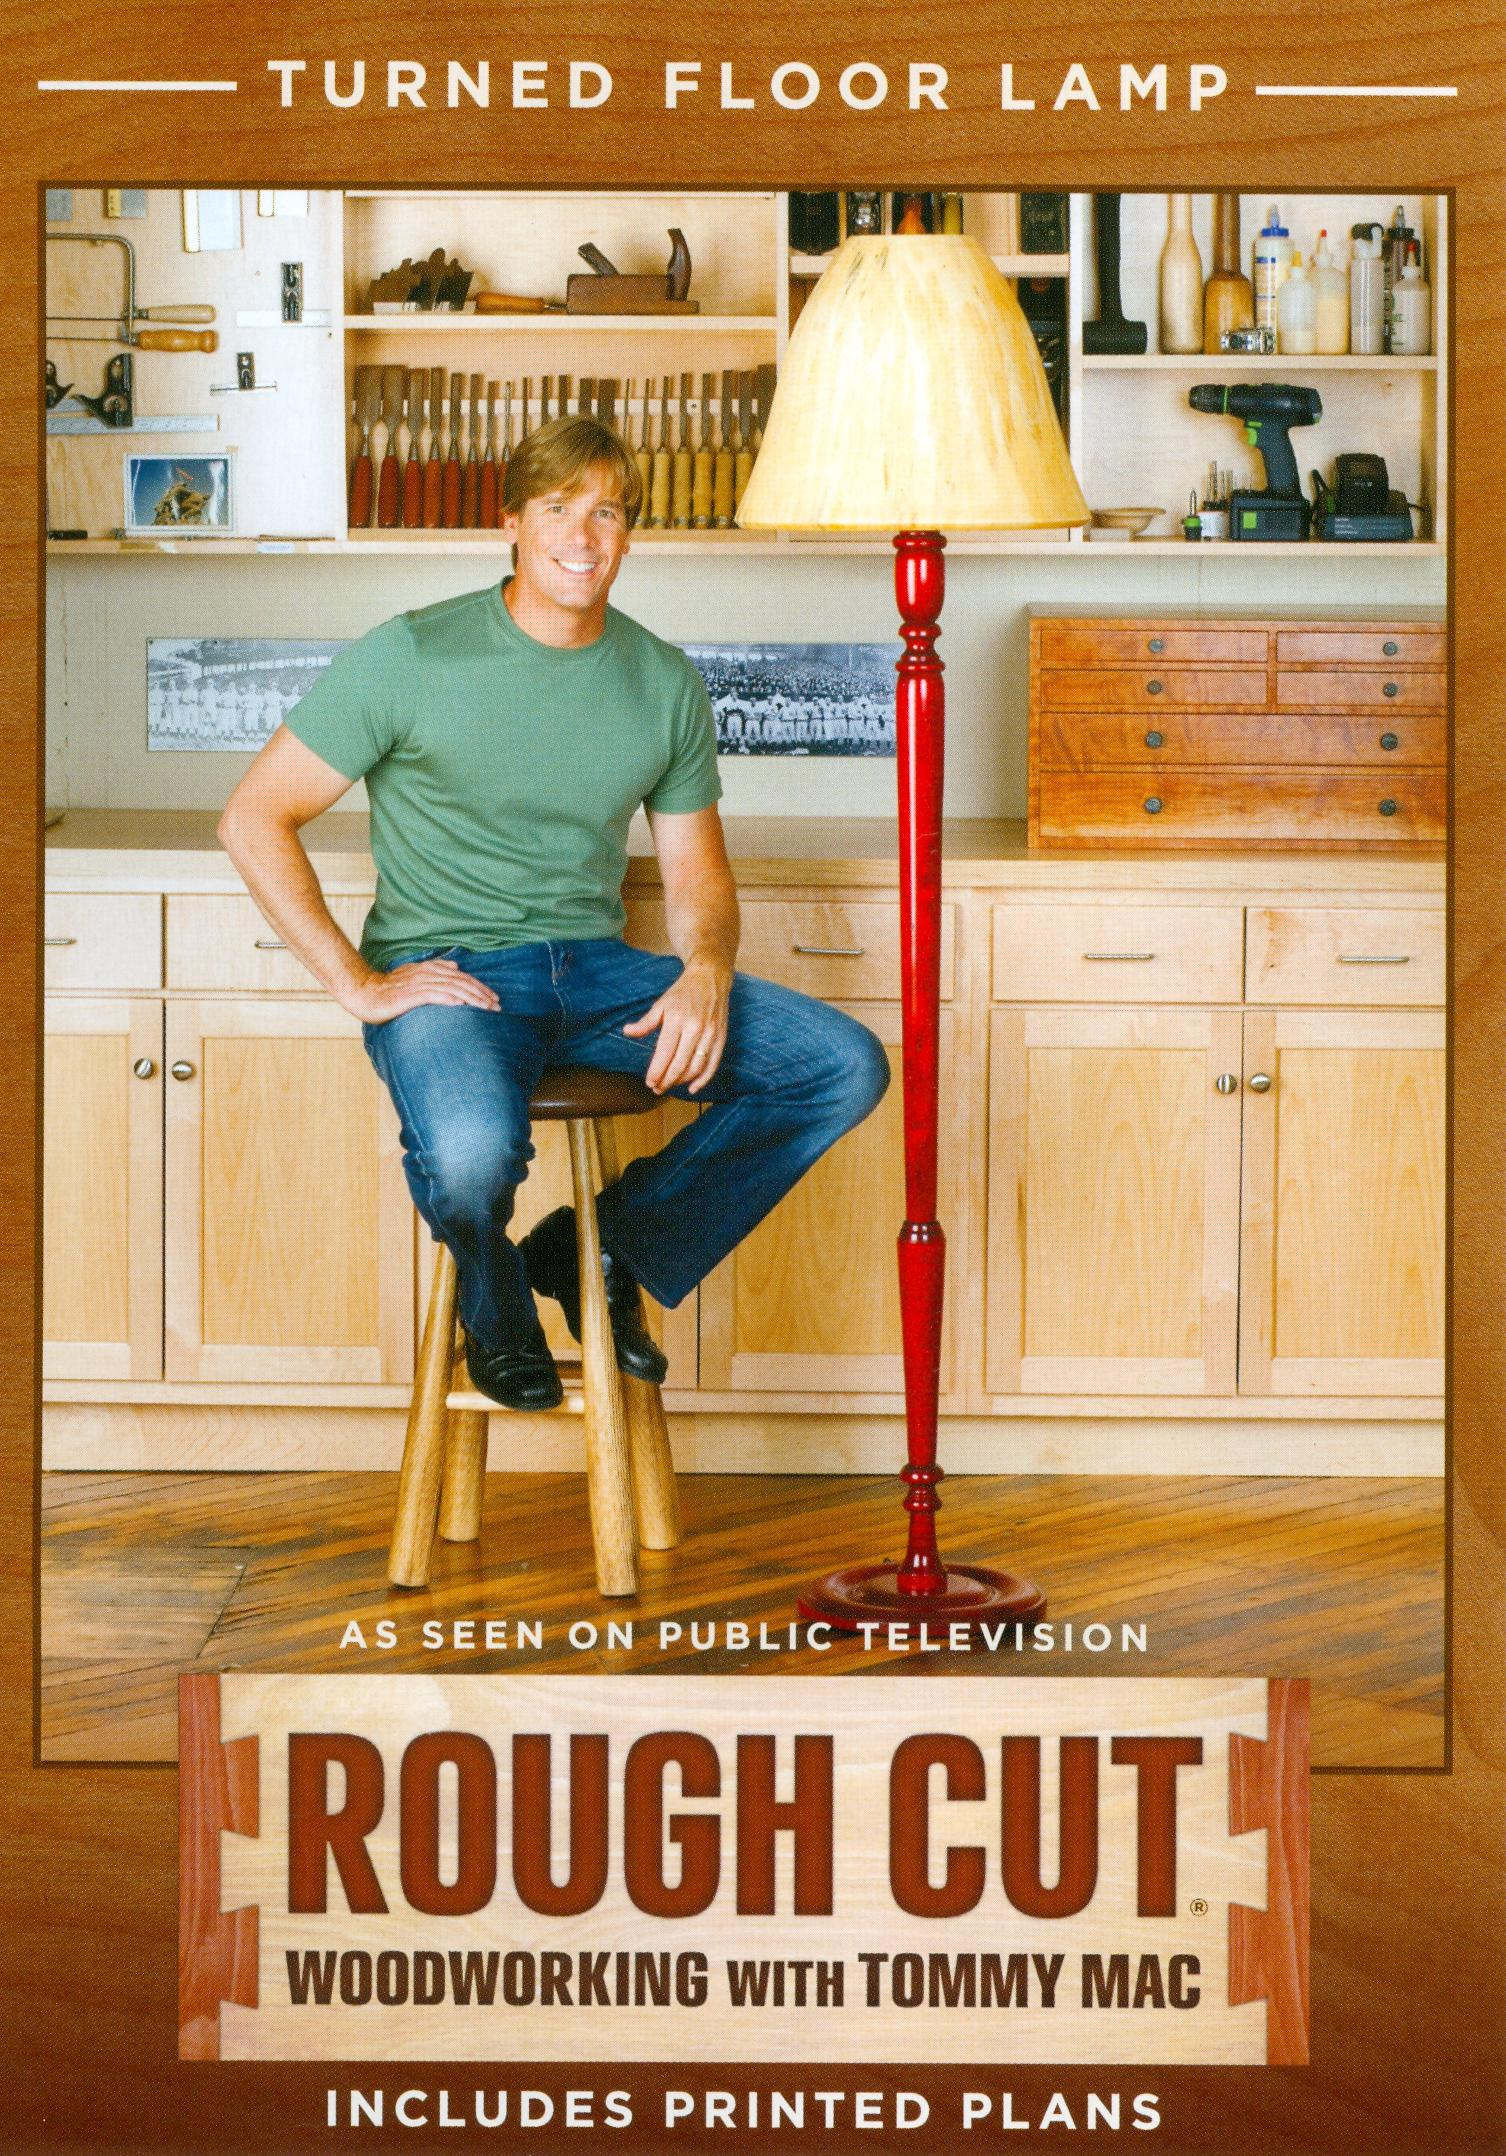 Rough Cut - Woodworking with Tommy Mac: Turned Floor Lamp